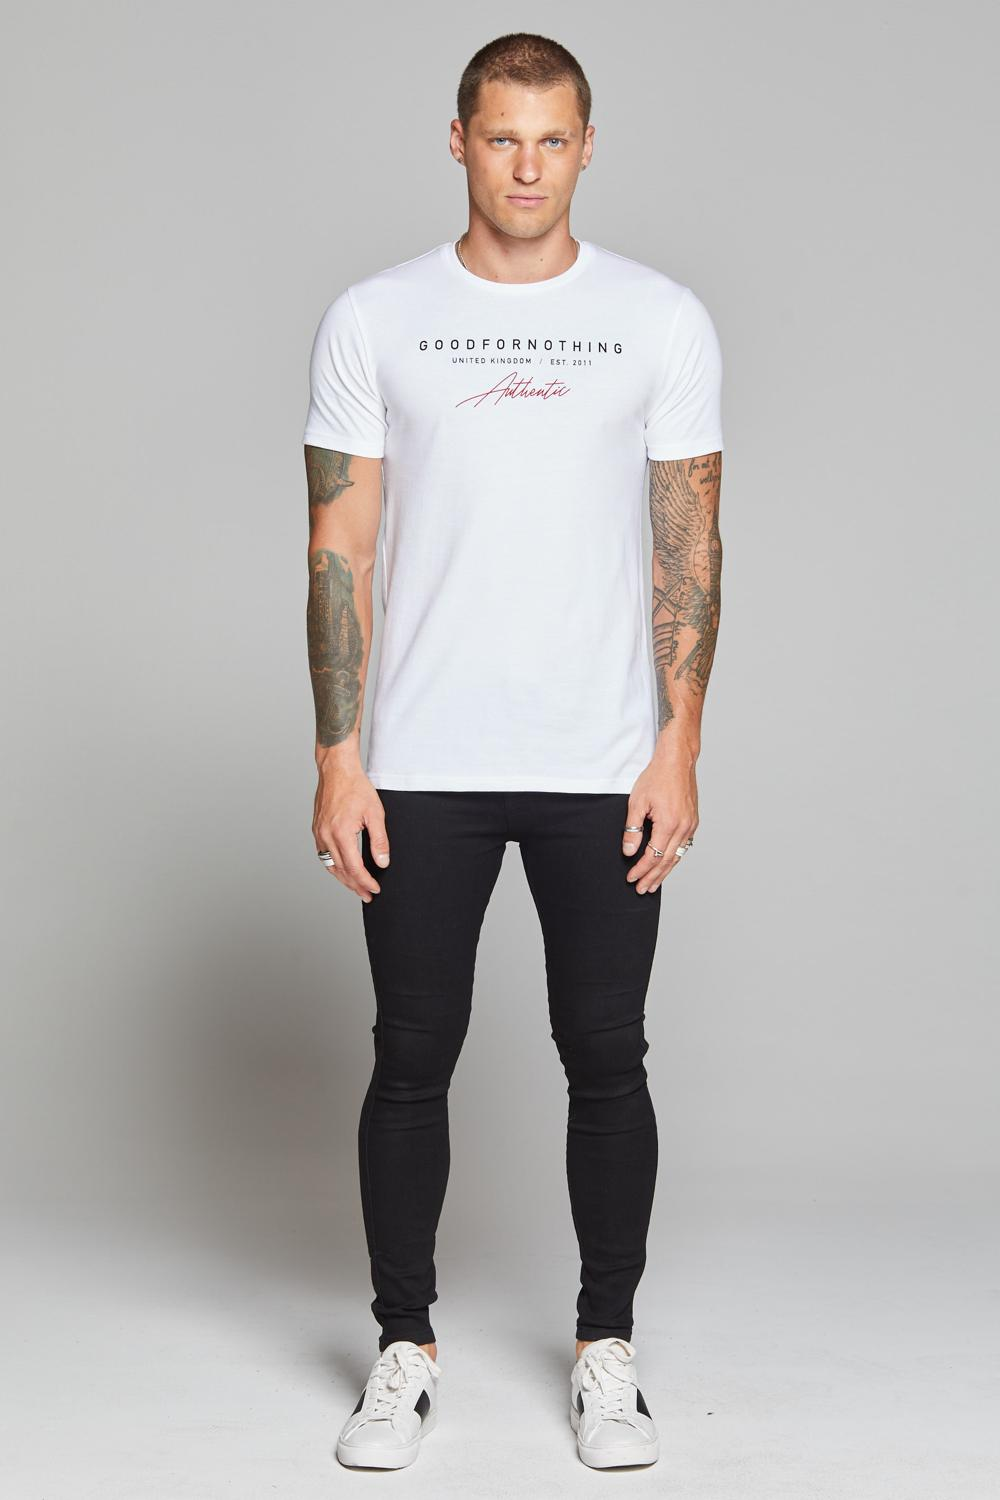 Good For Nothing Authentic Script T-shirt - White